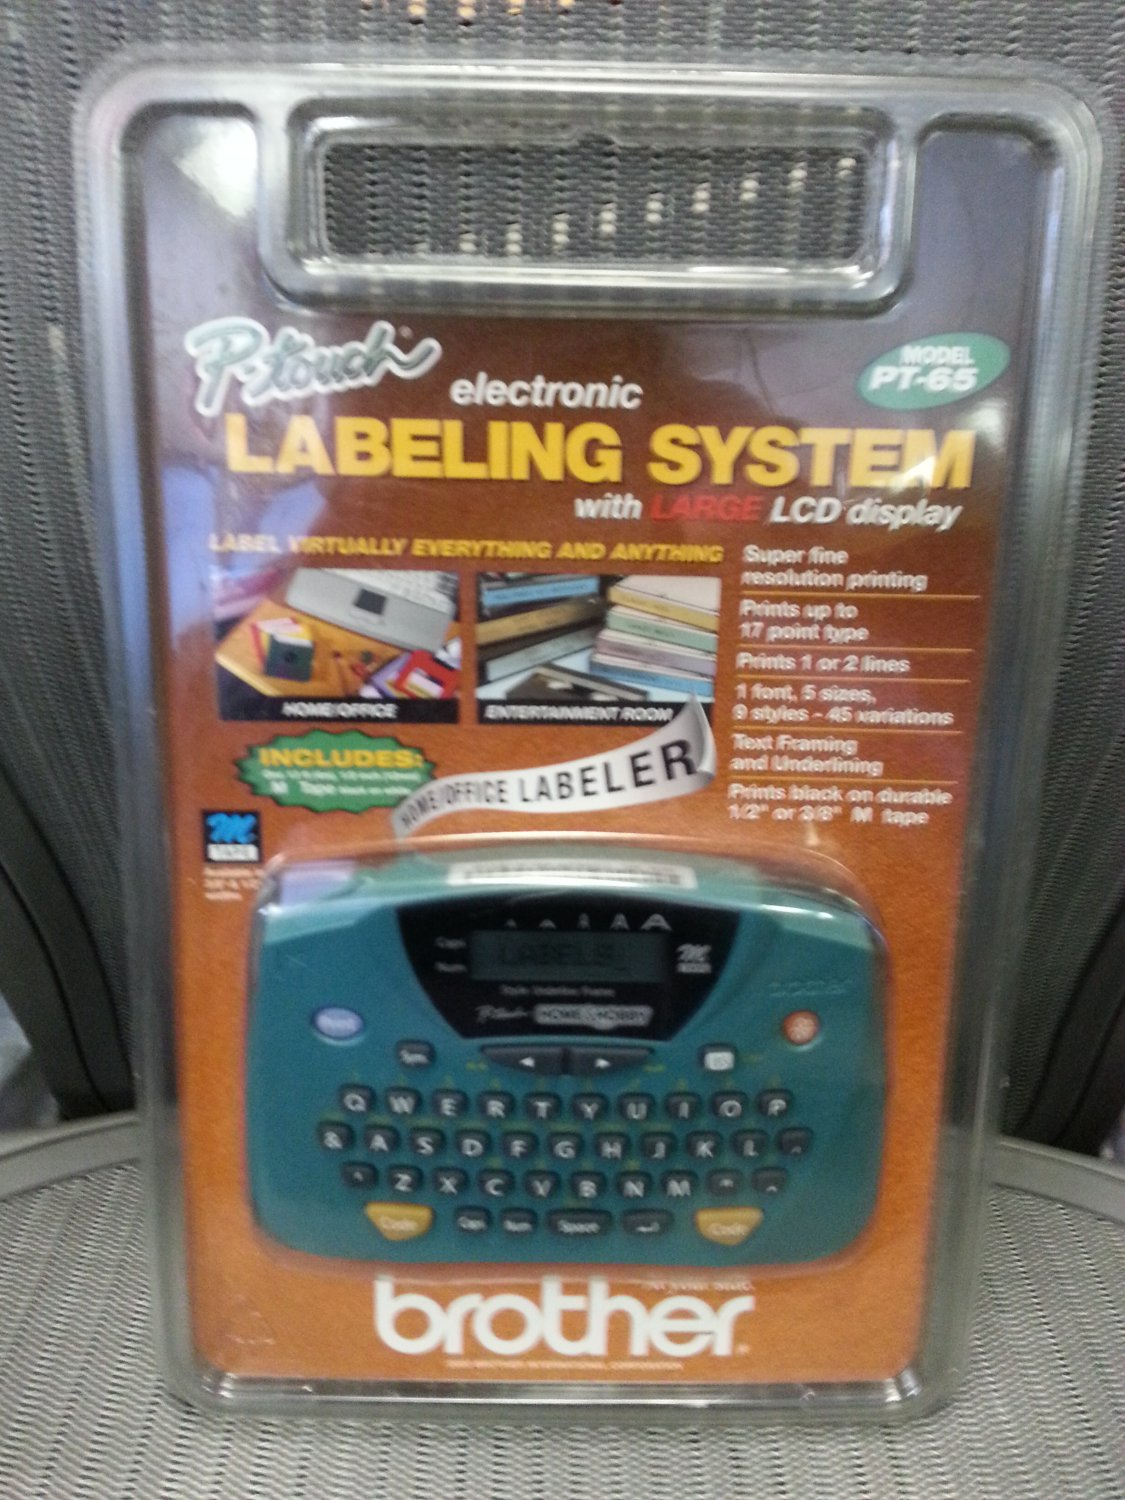 This is a picture of Dashing Brother P Touch Home and Hobby Label Maker Tape